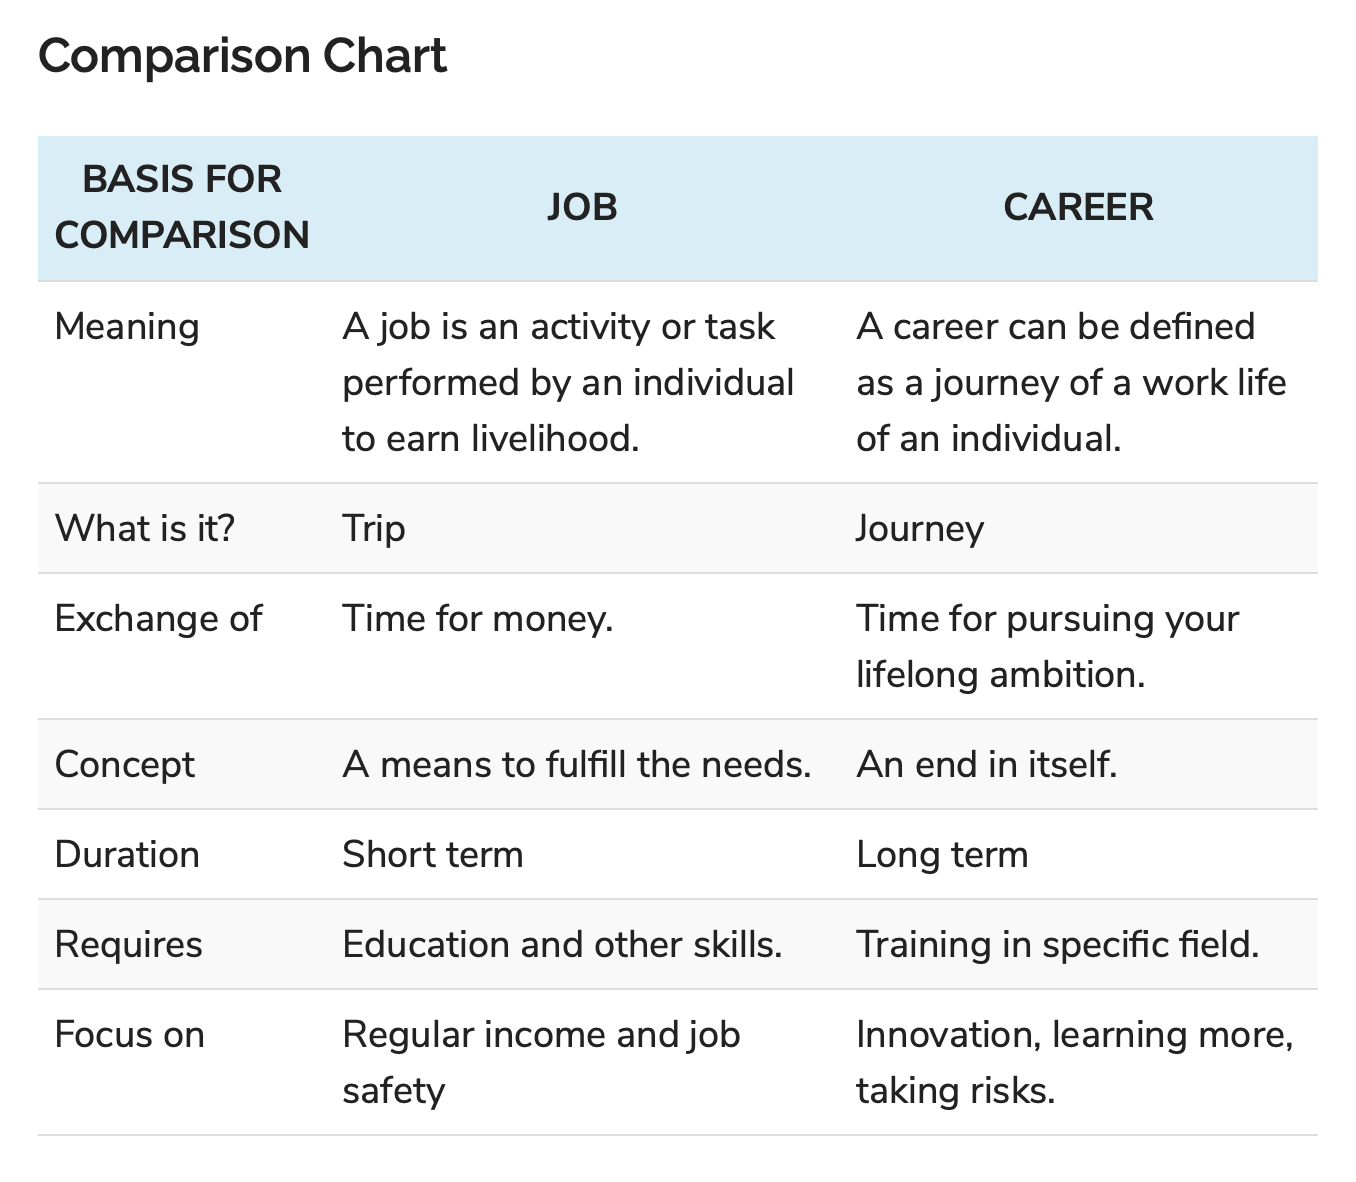 Difference Between Job and Career - keydifferences.com